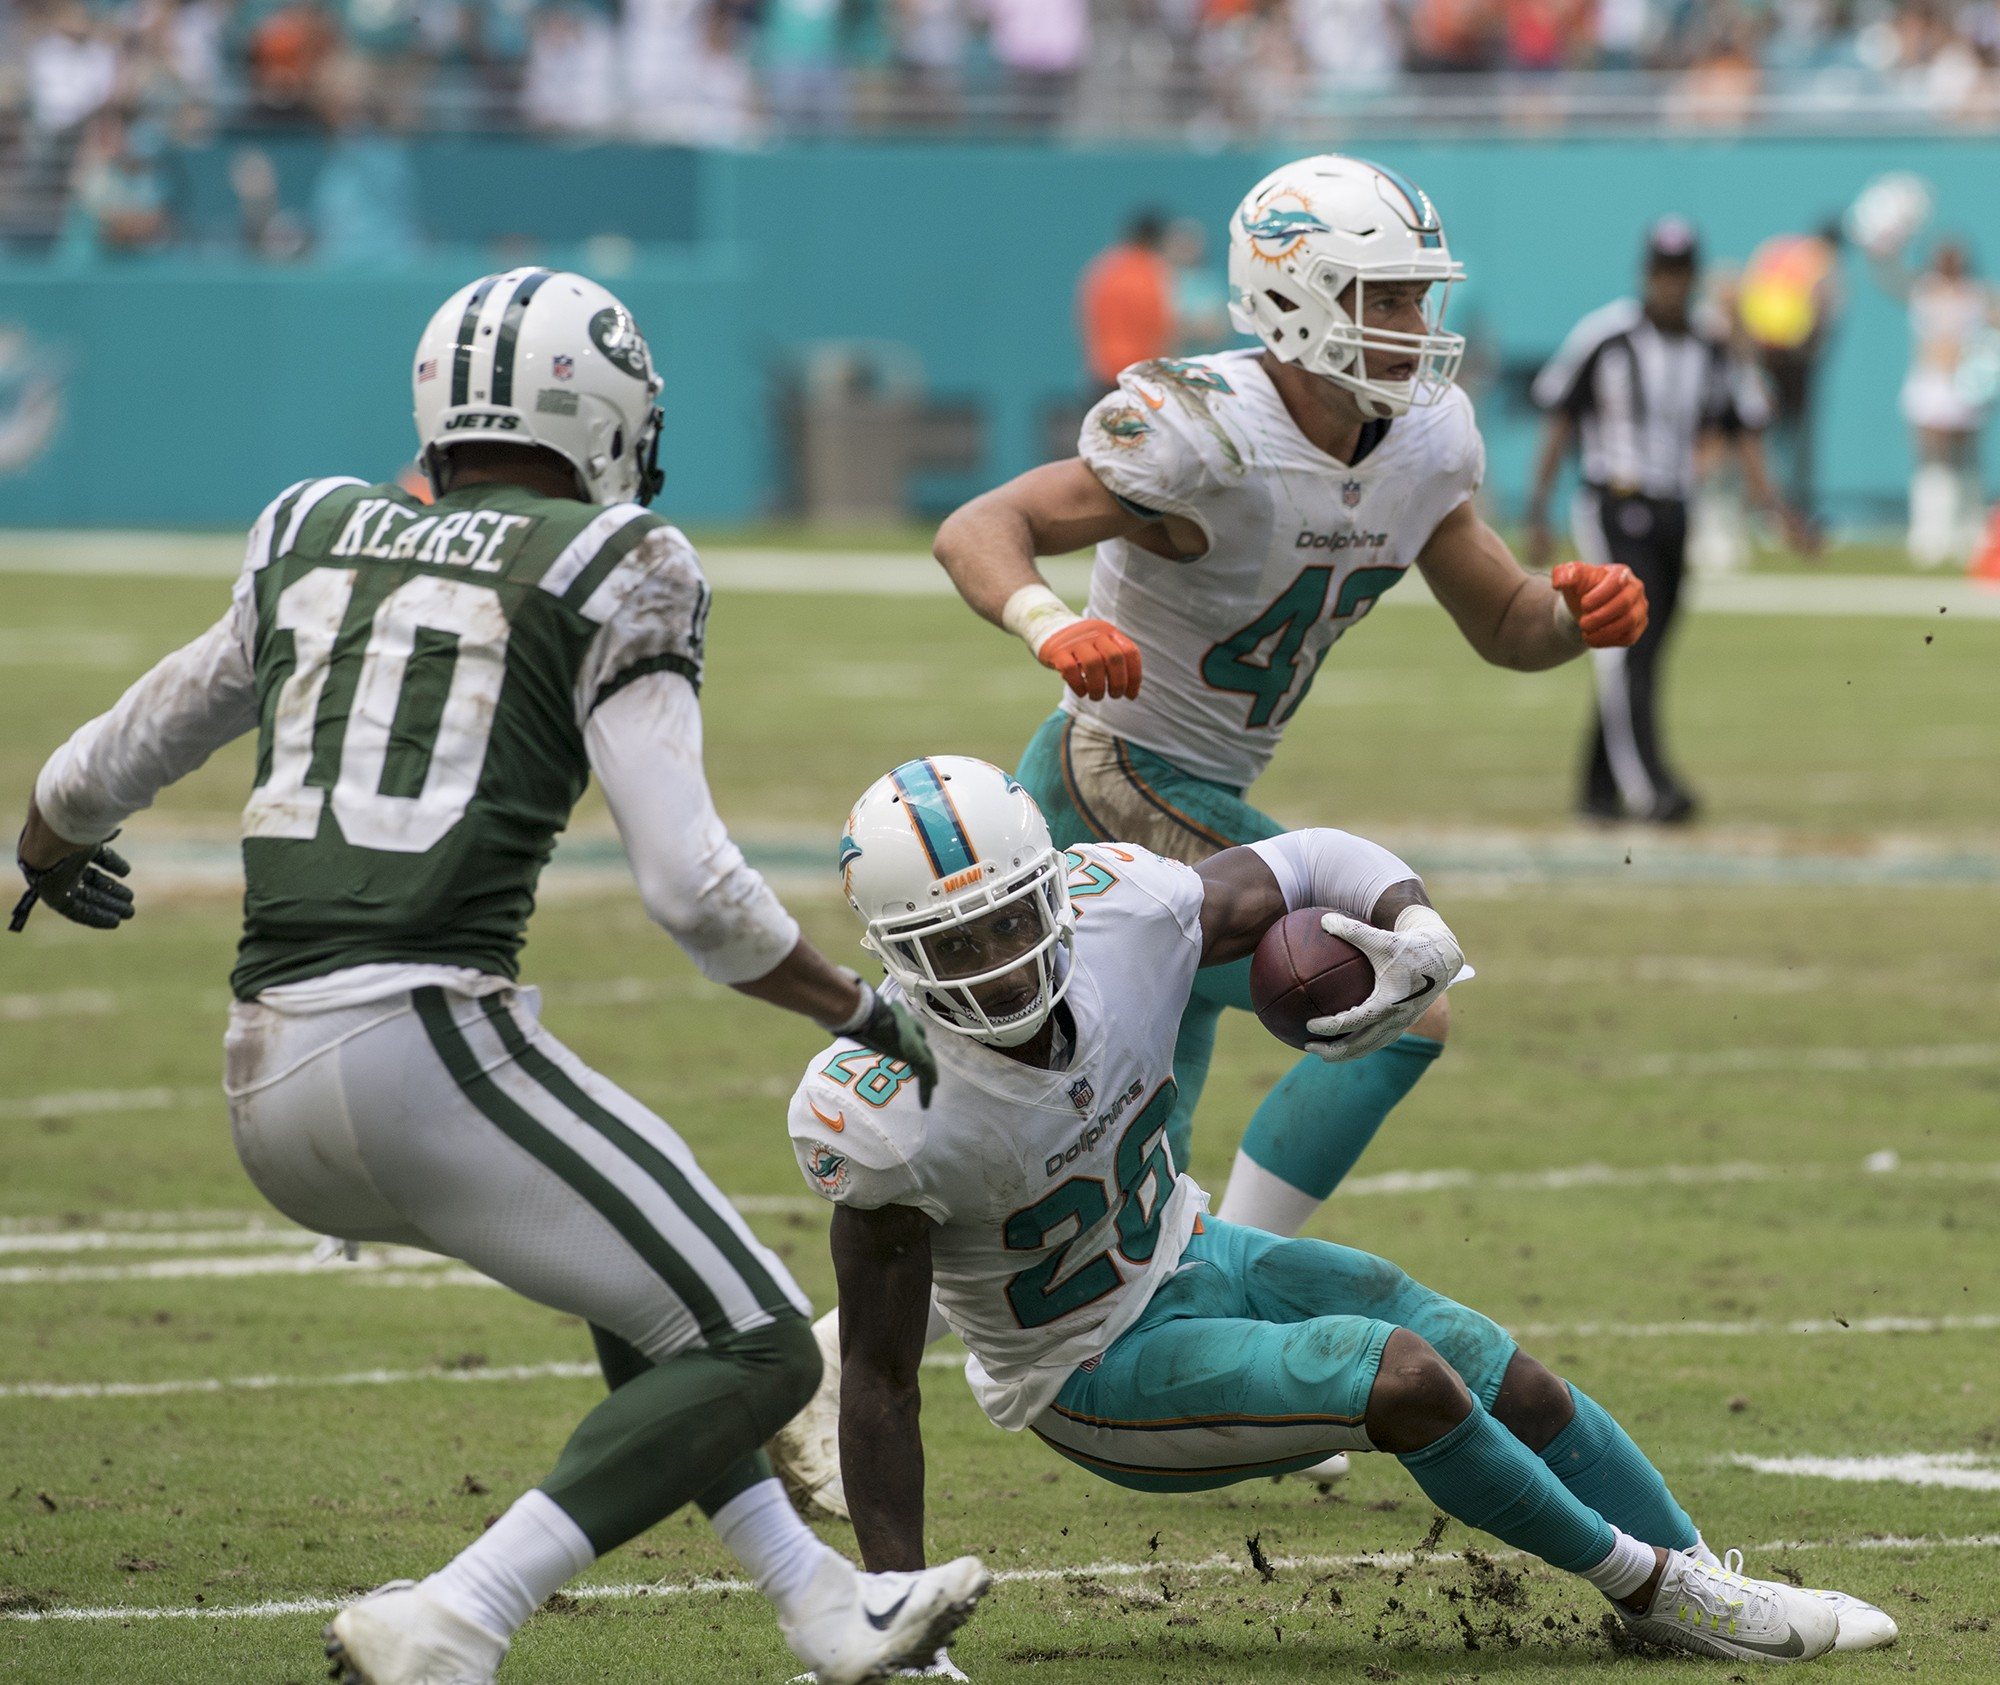 Miami Dolphins cornerback Bobby McCain (28) advance the ball after a 4th qtr interception of an NFL football game on Sunday, Oct. 22, 2017, in Miami Gardens, Fla. as New York Jets wide receiver Jermaine Kearse (10) defends. The Miami Dolphins went on to defeat the New York Jets 28-31 28-31.(Donald Edgar/El Latino Digital)